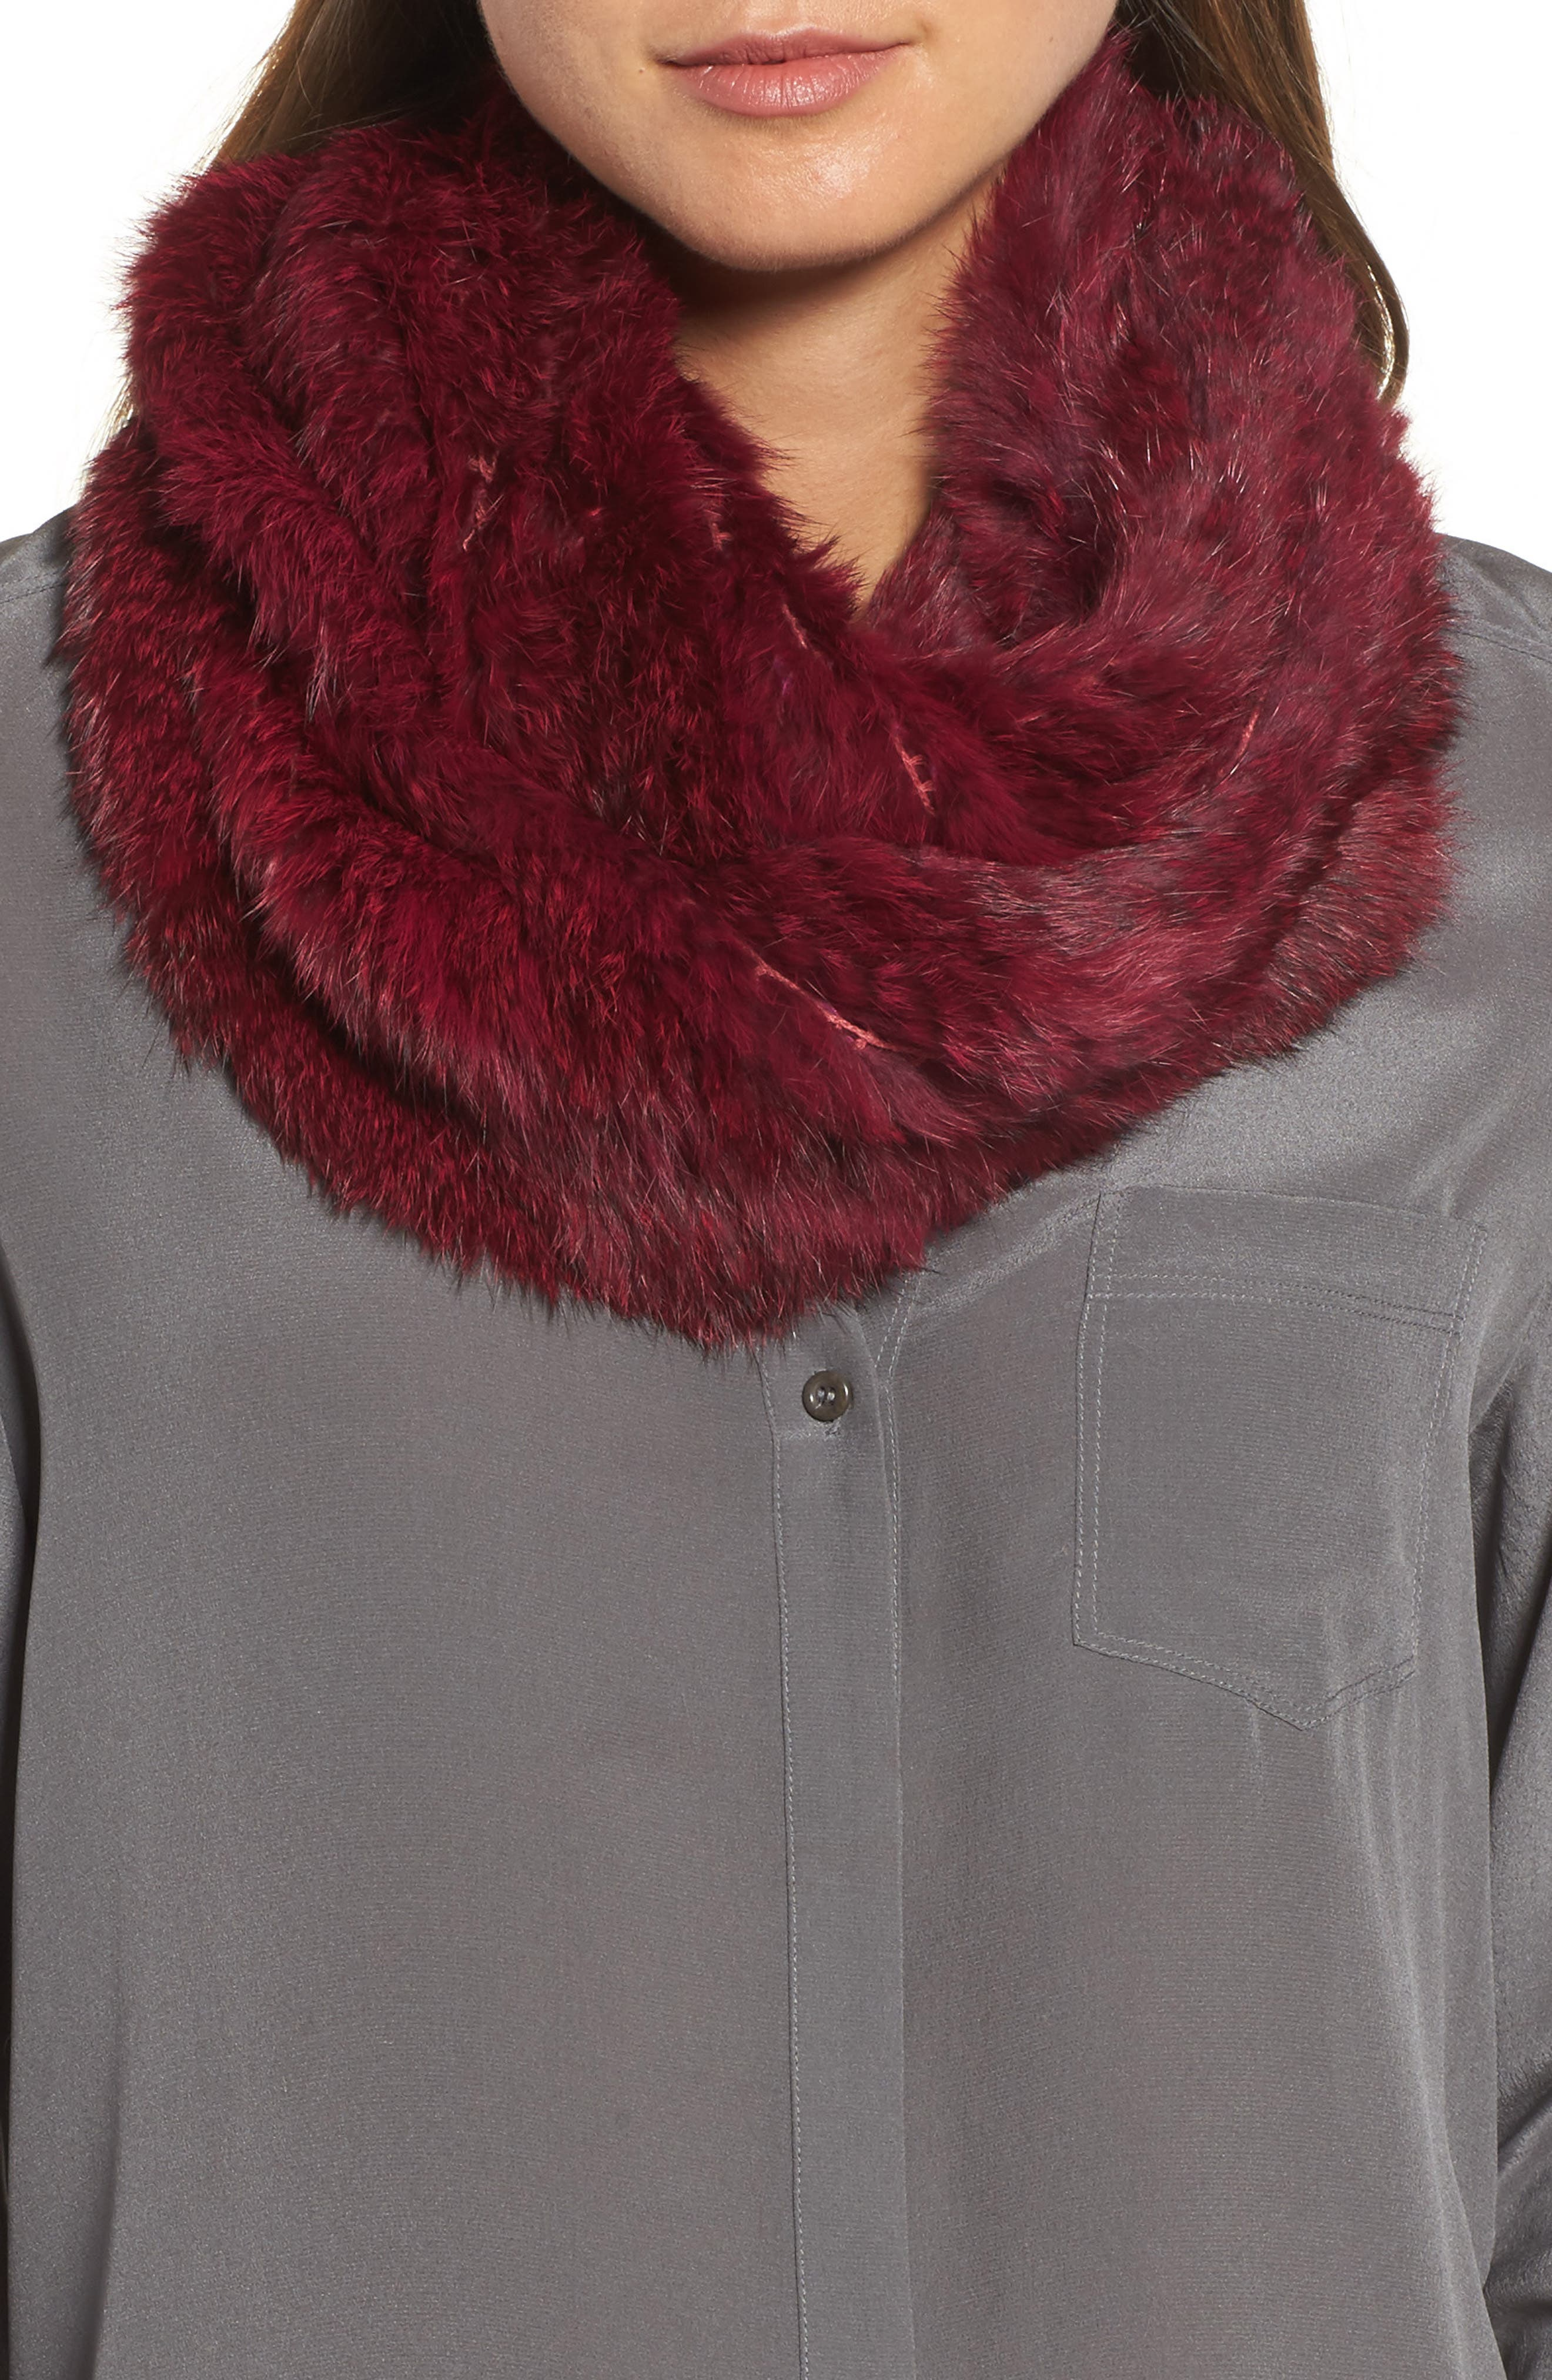 Overdyed Genuine Rabbit Fur Infinity Scarf,                             Main thumbnail 1, color,                             930